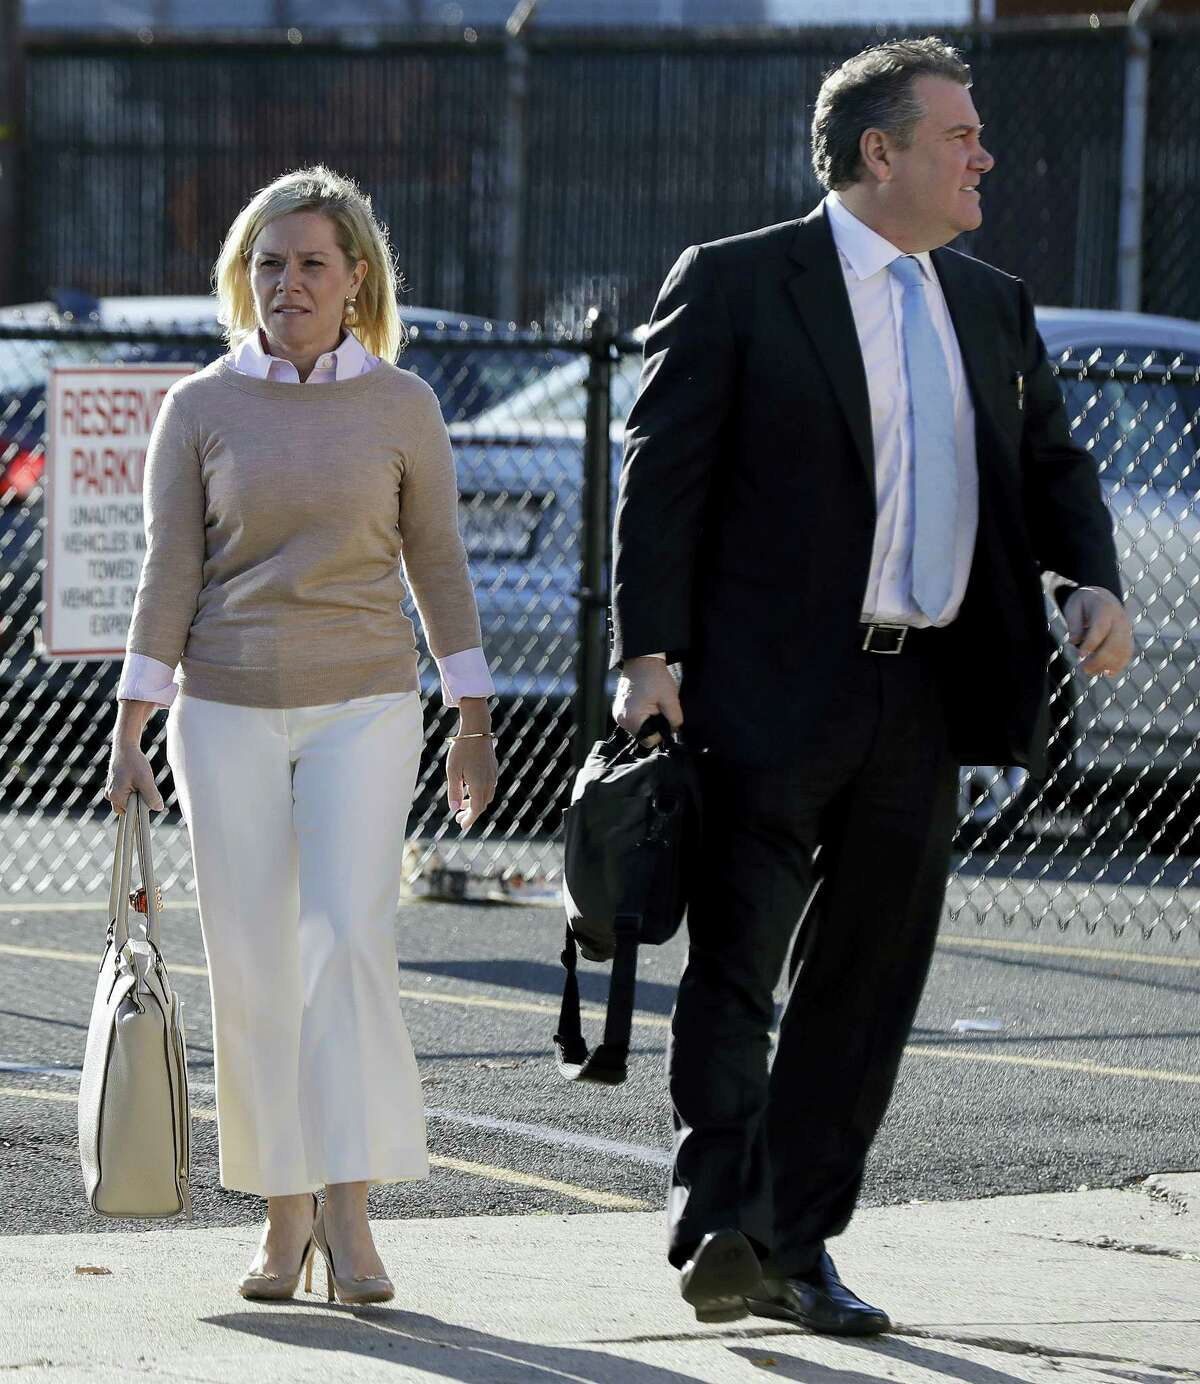 New Jersey Gov. Chris Christie's former Deputy Chief of Staff Bridget Anne Kelly arrives at Martin Luther King, Jr., Federal Court, Friday, Nov. 4, 2016, in Newark, N.J. Kelly and Bill Baroni are charged with scheming to use traffic jams to punish a Democratic mayor who didn't endorse Christie in 2013.